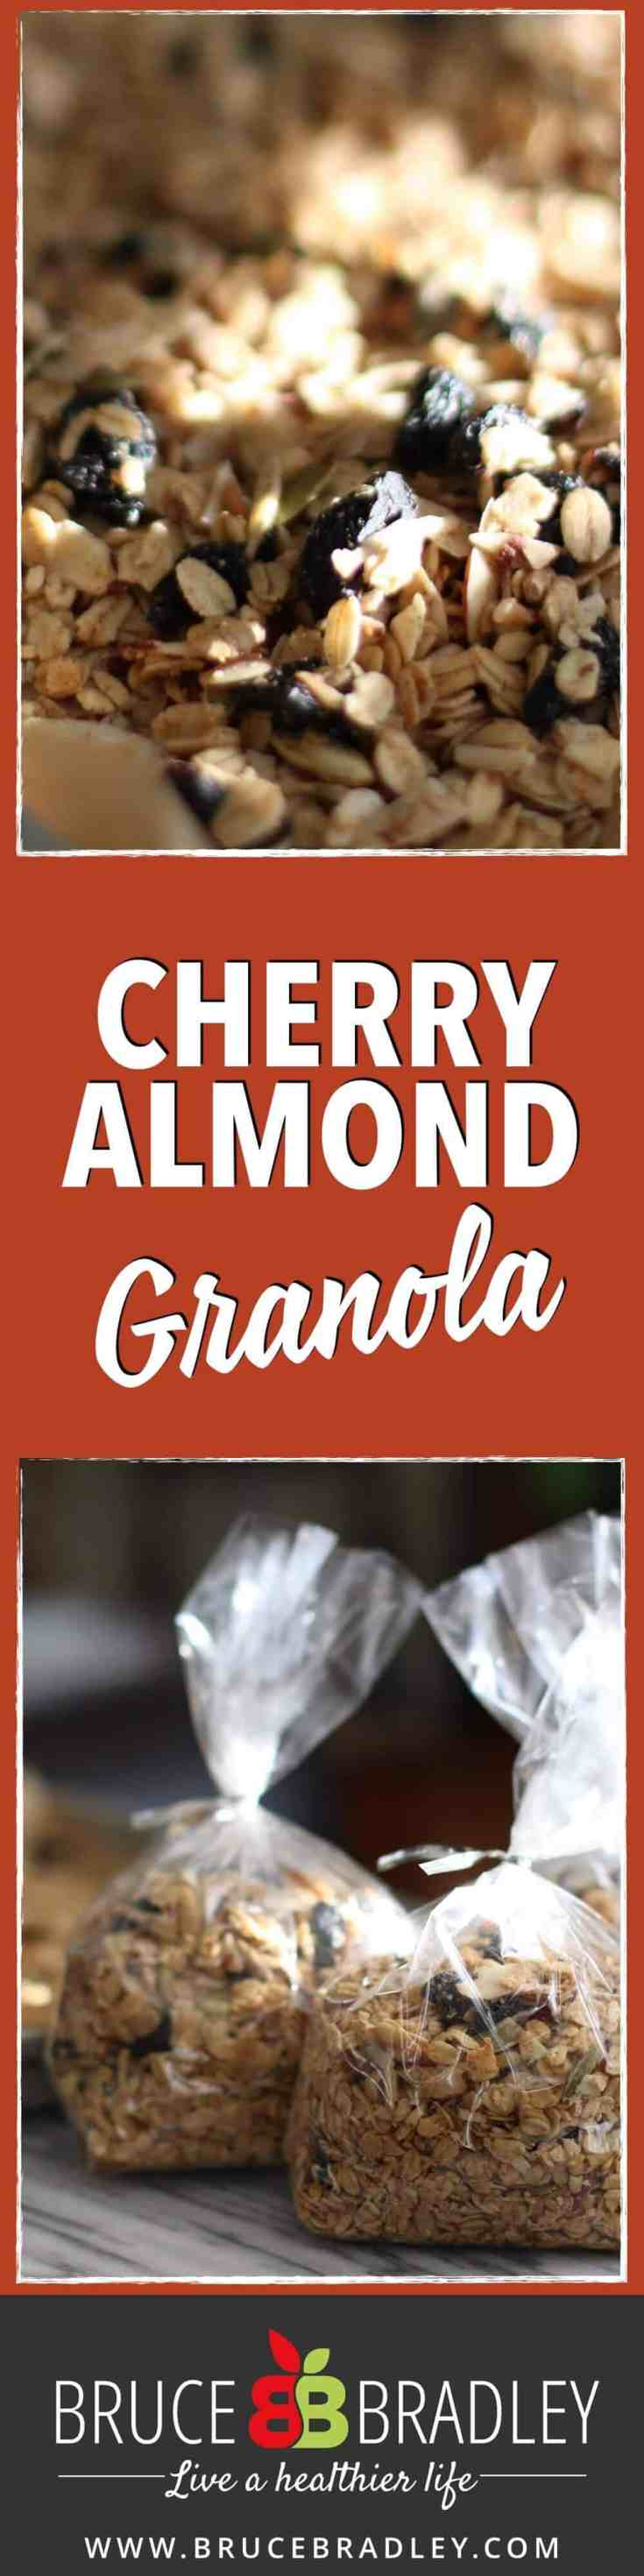 ... Cherry Almond Granola is delicious and made with 100% real ingredients